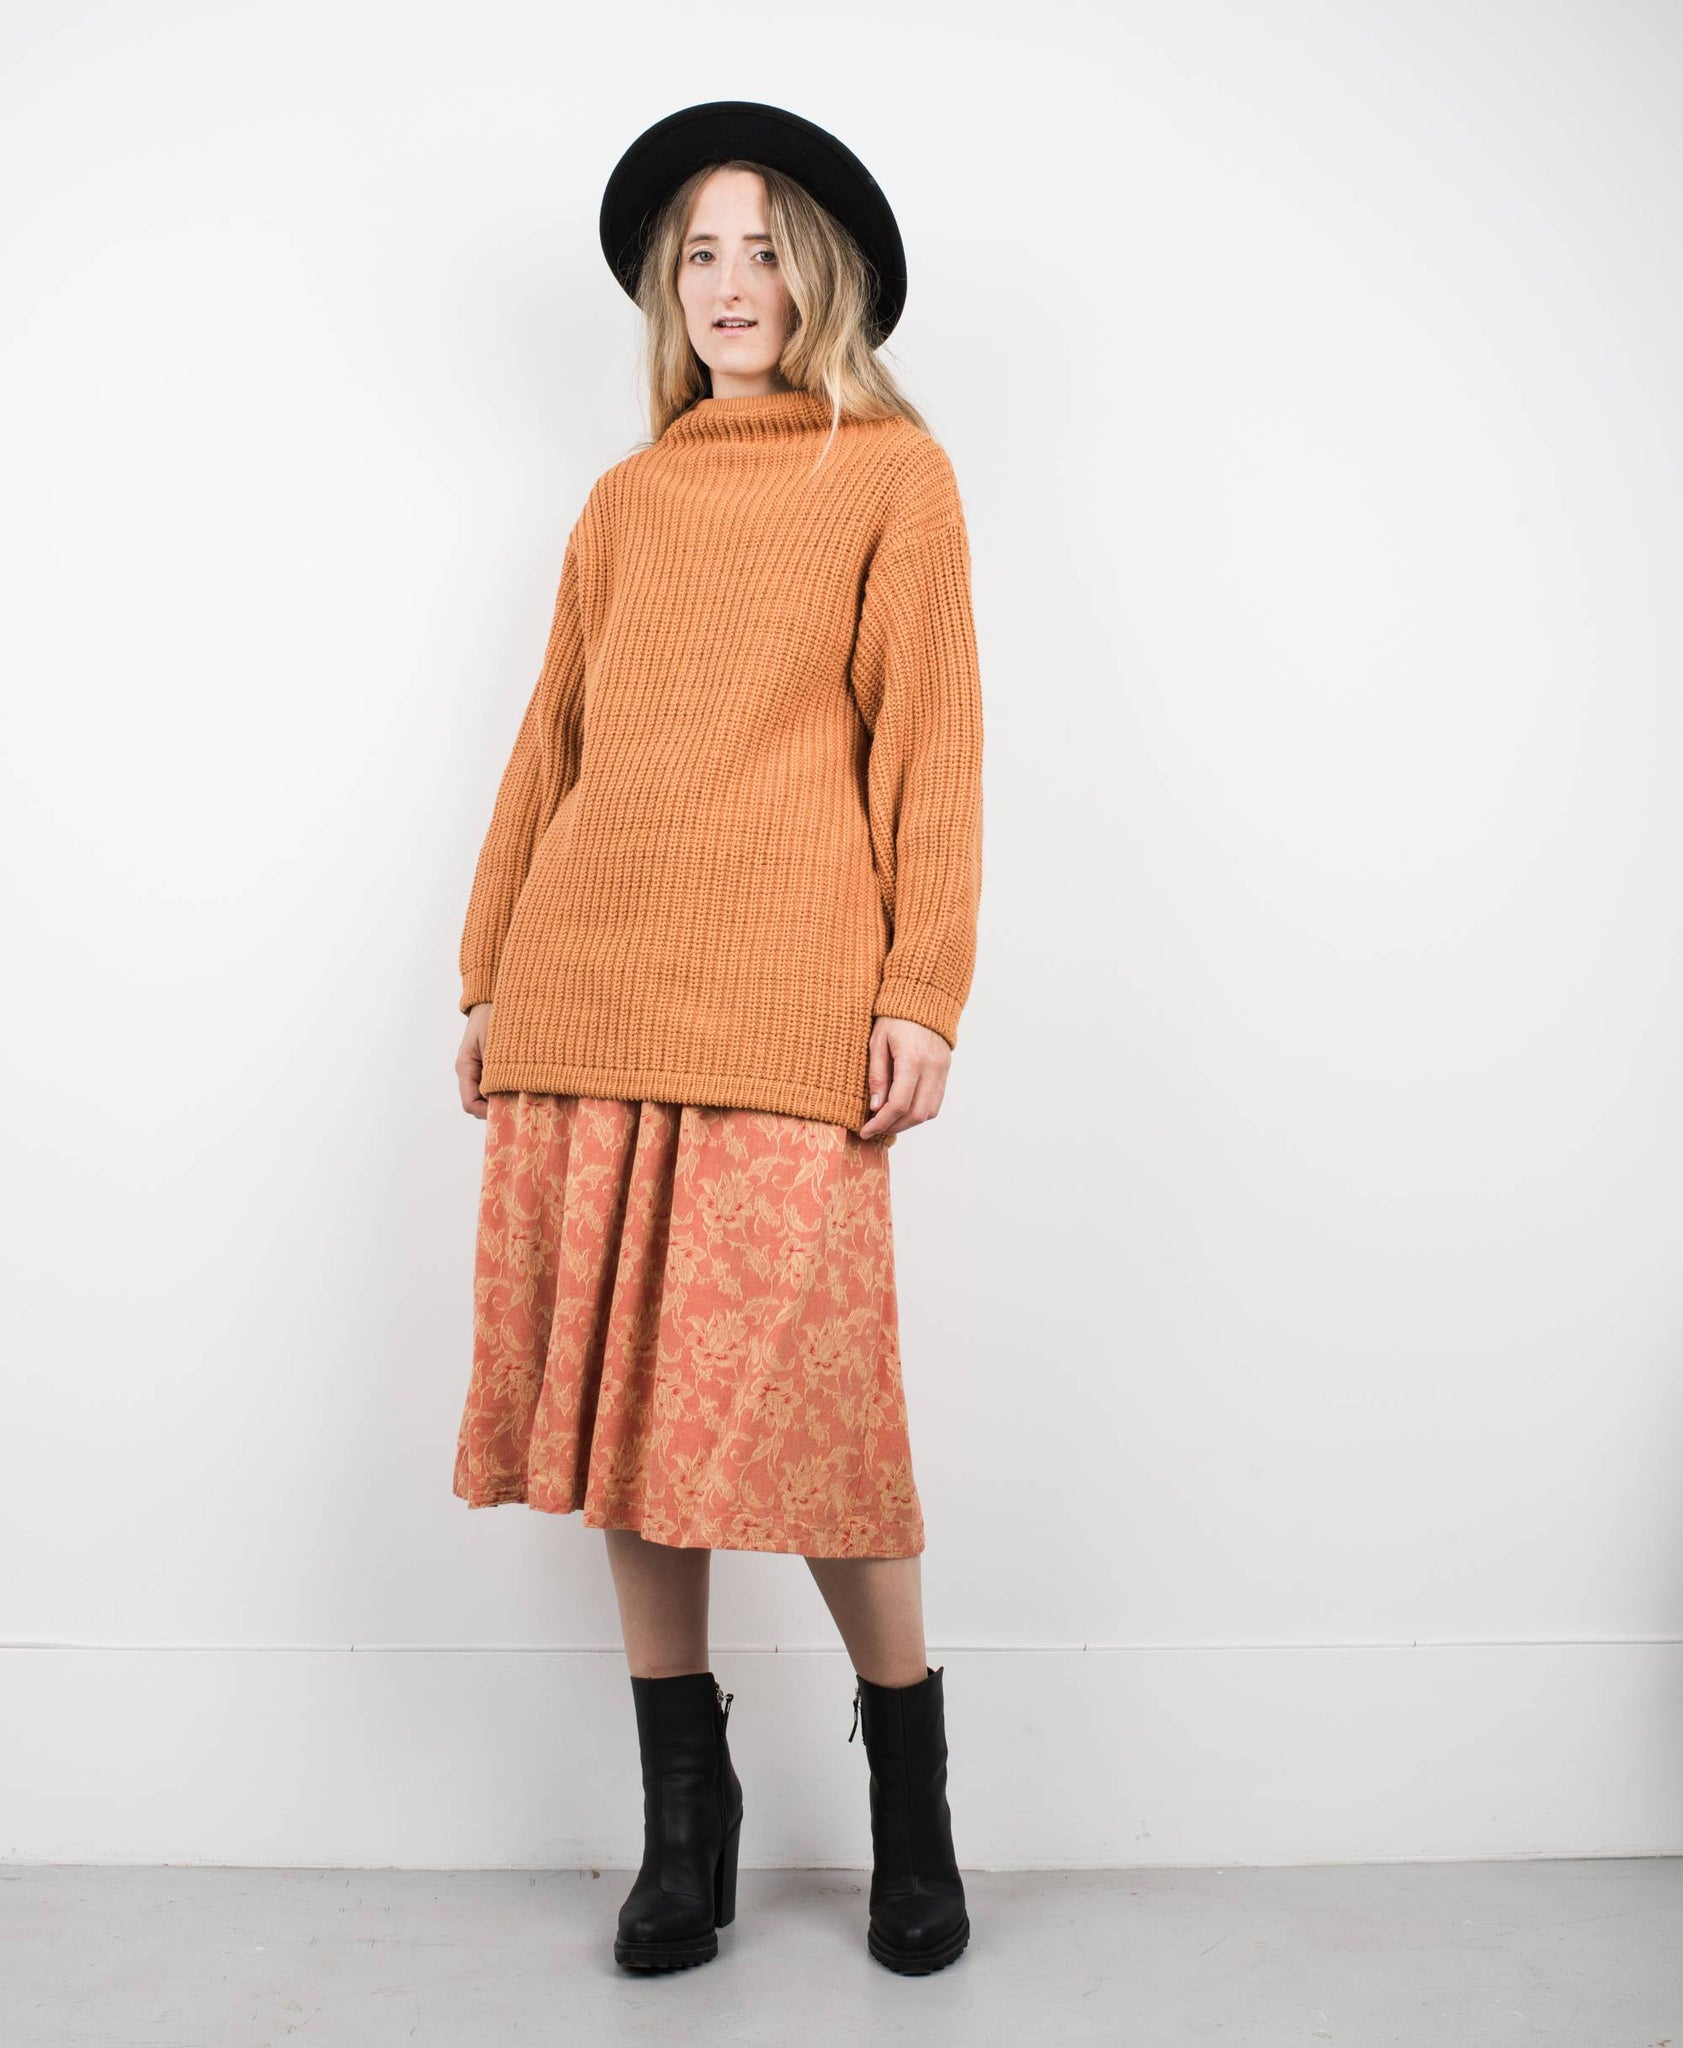 Vintage Oversized Orange Knit Sweater XS/S - Closed Caption